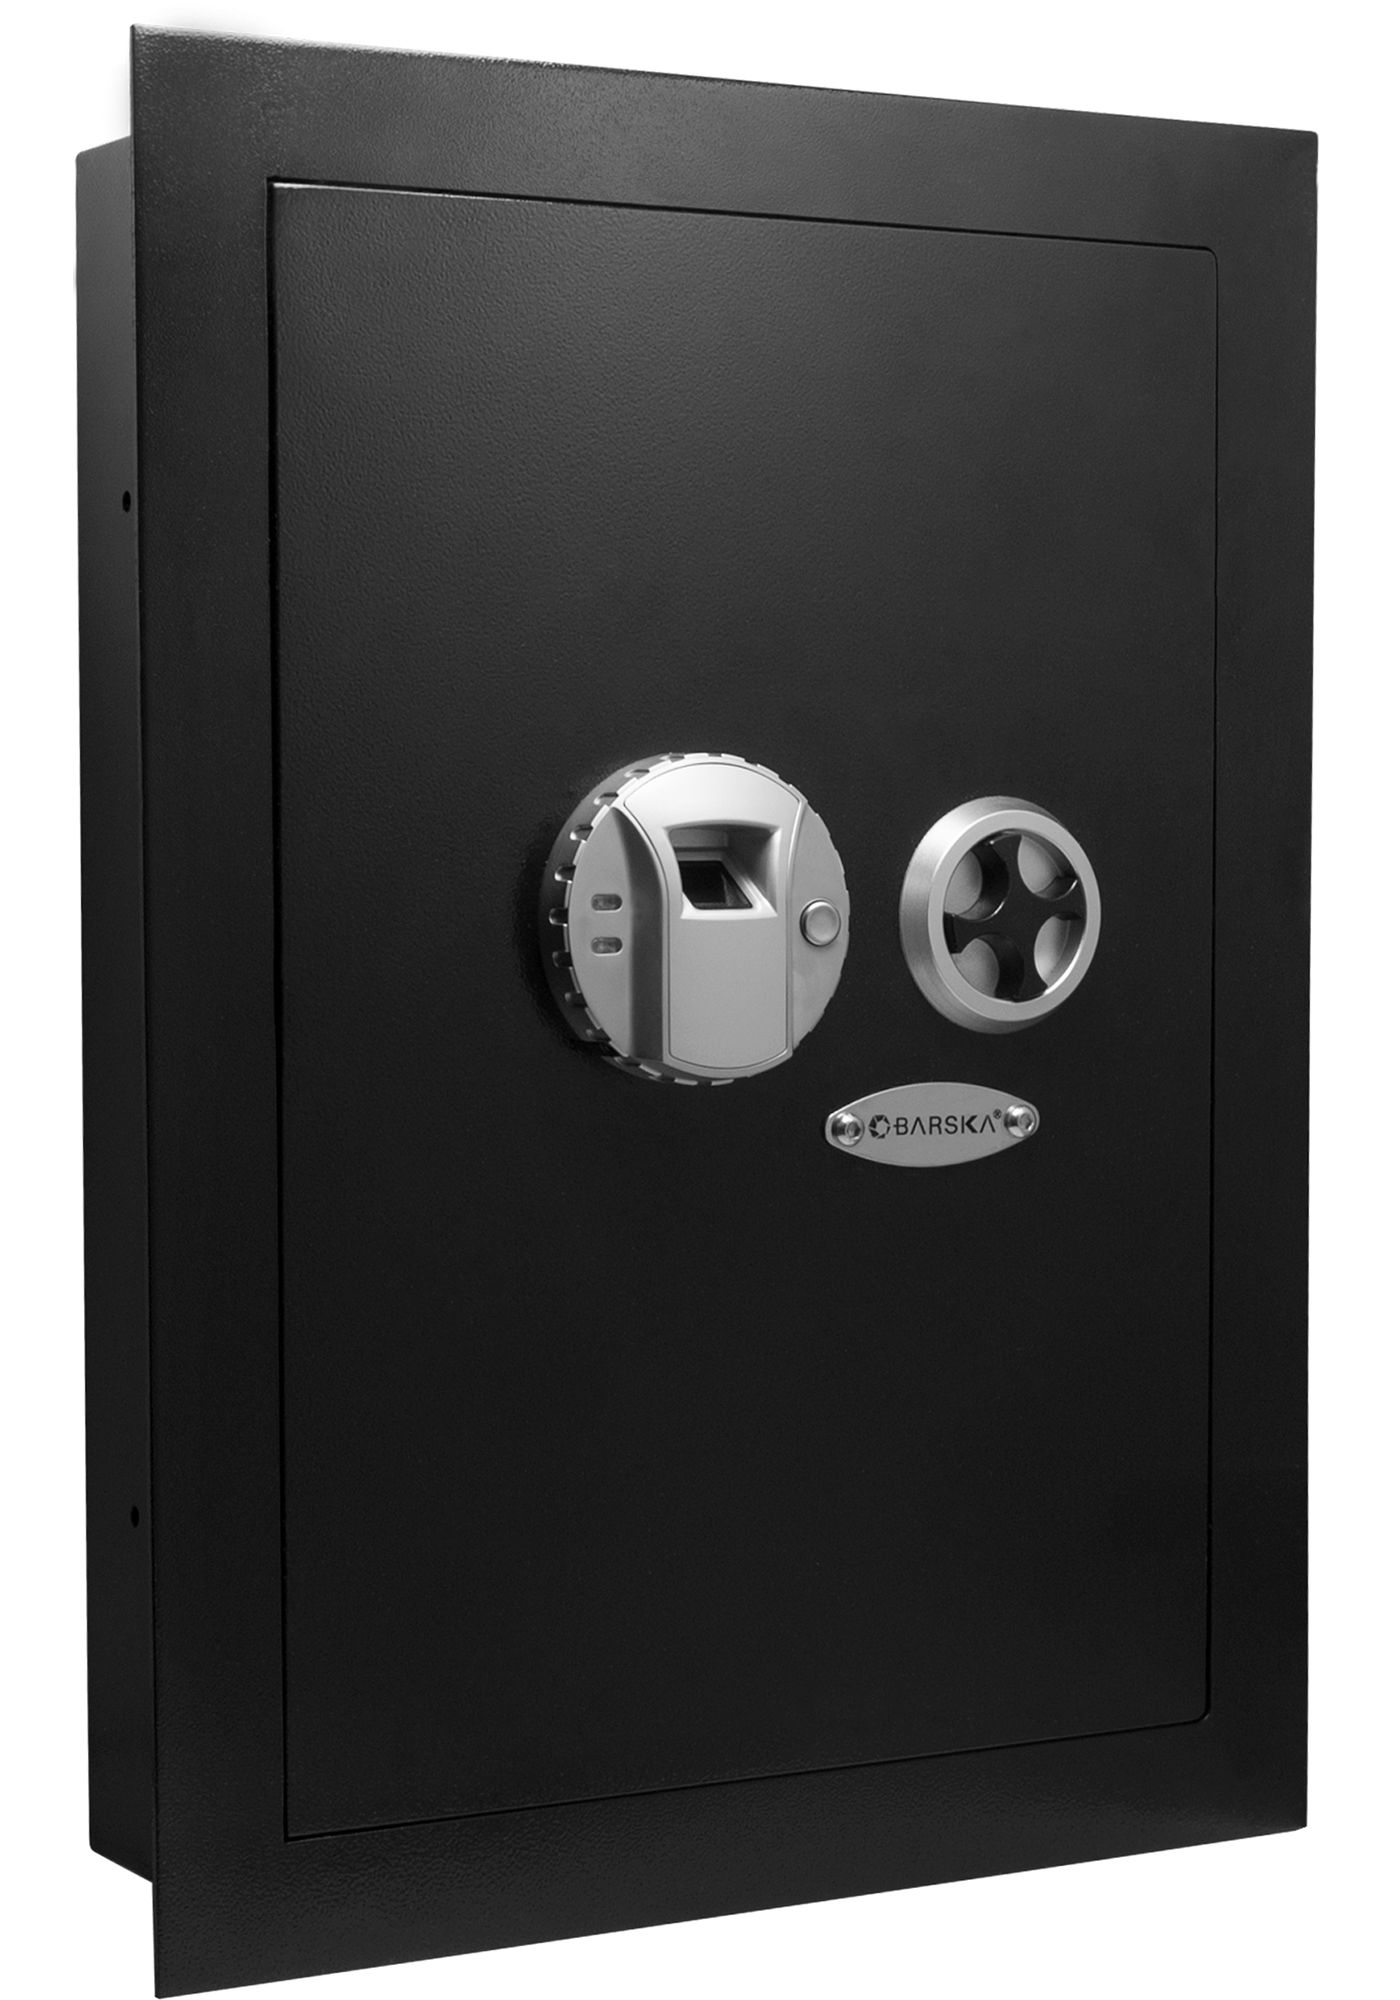 Barska Left Opening Wall Safe with Biometric Lock